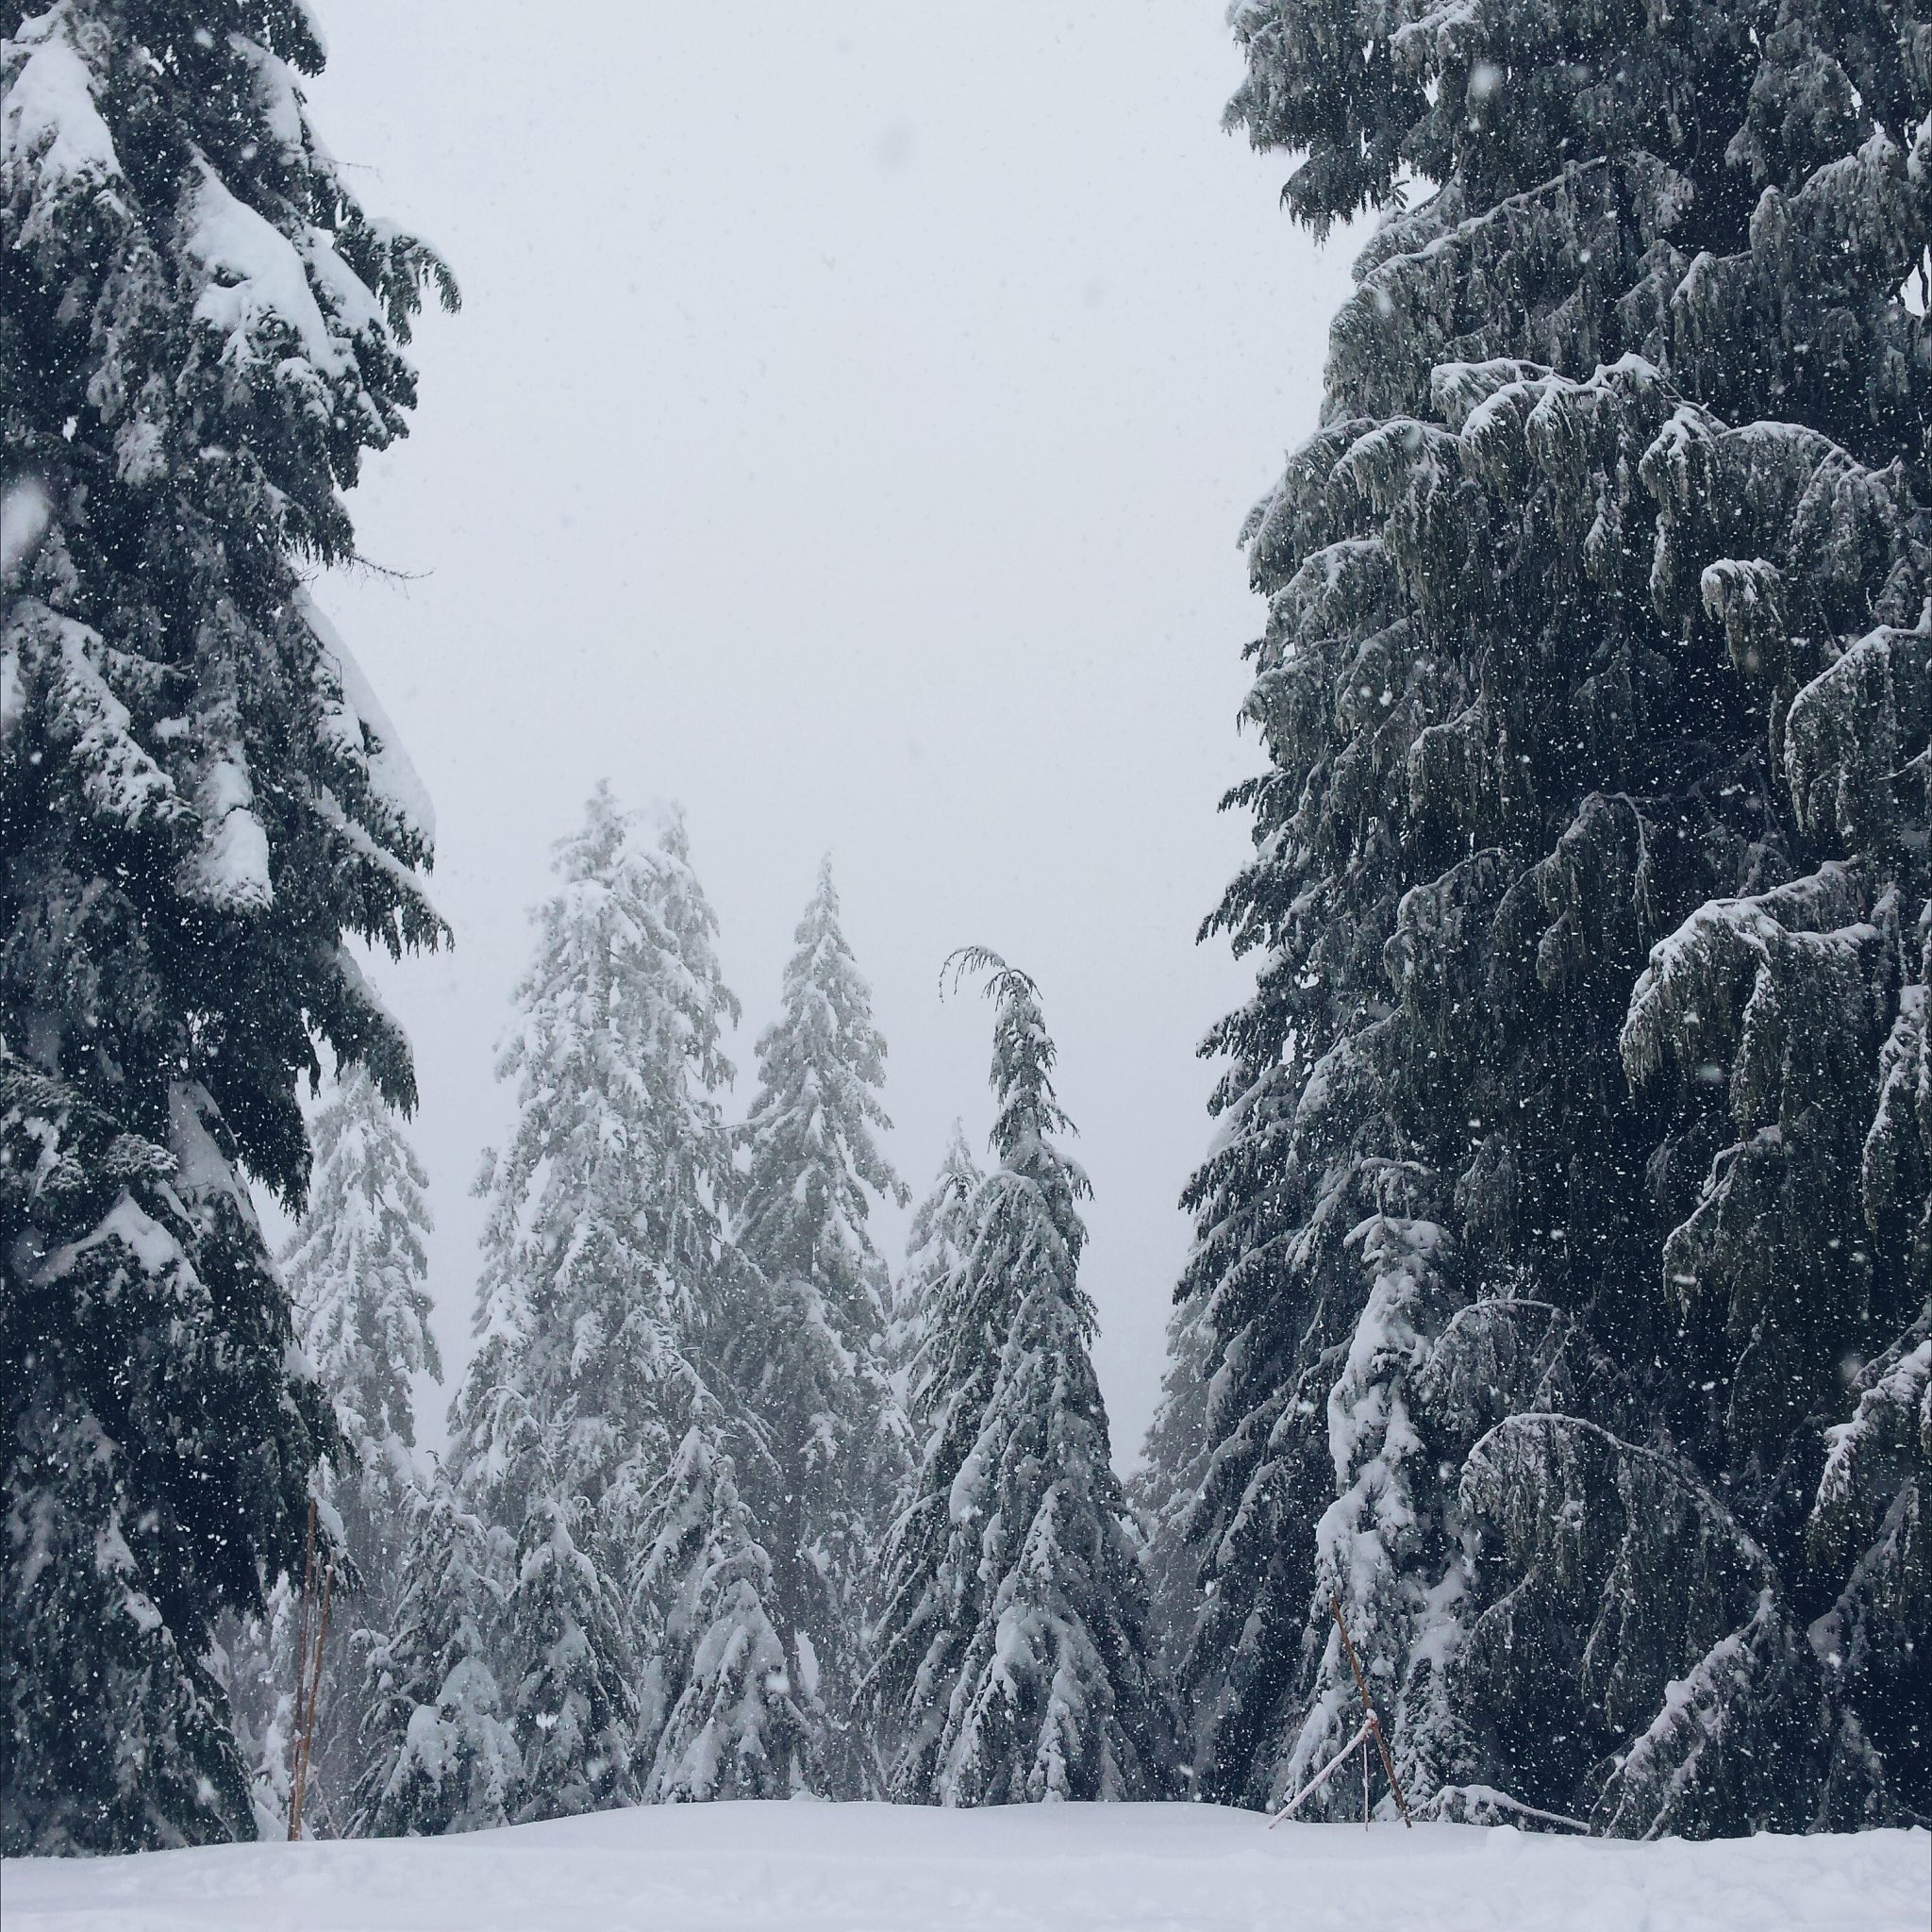 Mount Seymour in Vancouver, Canada